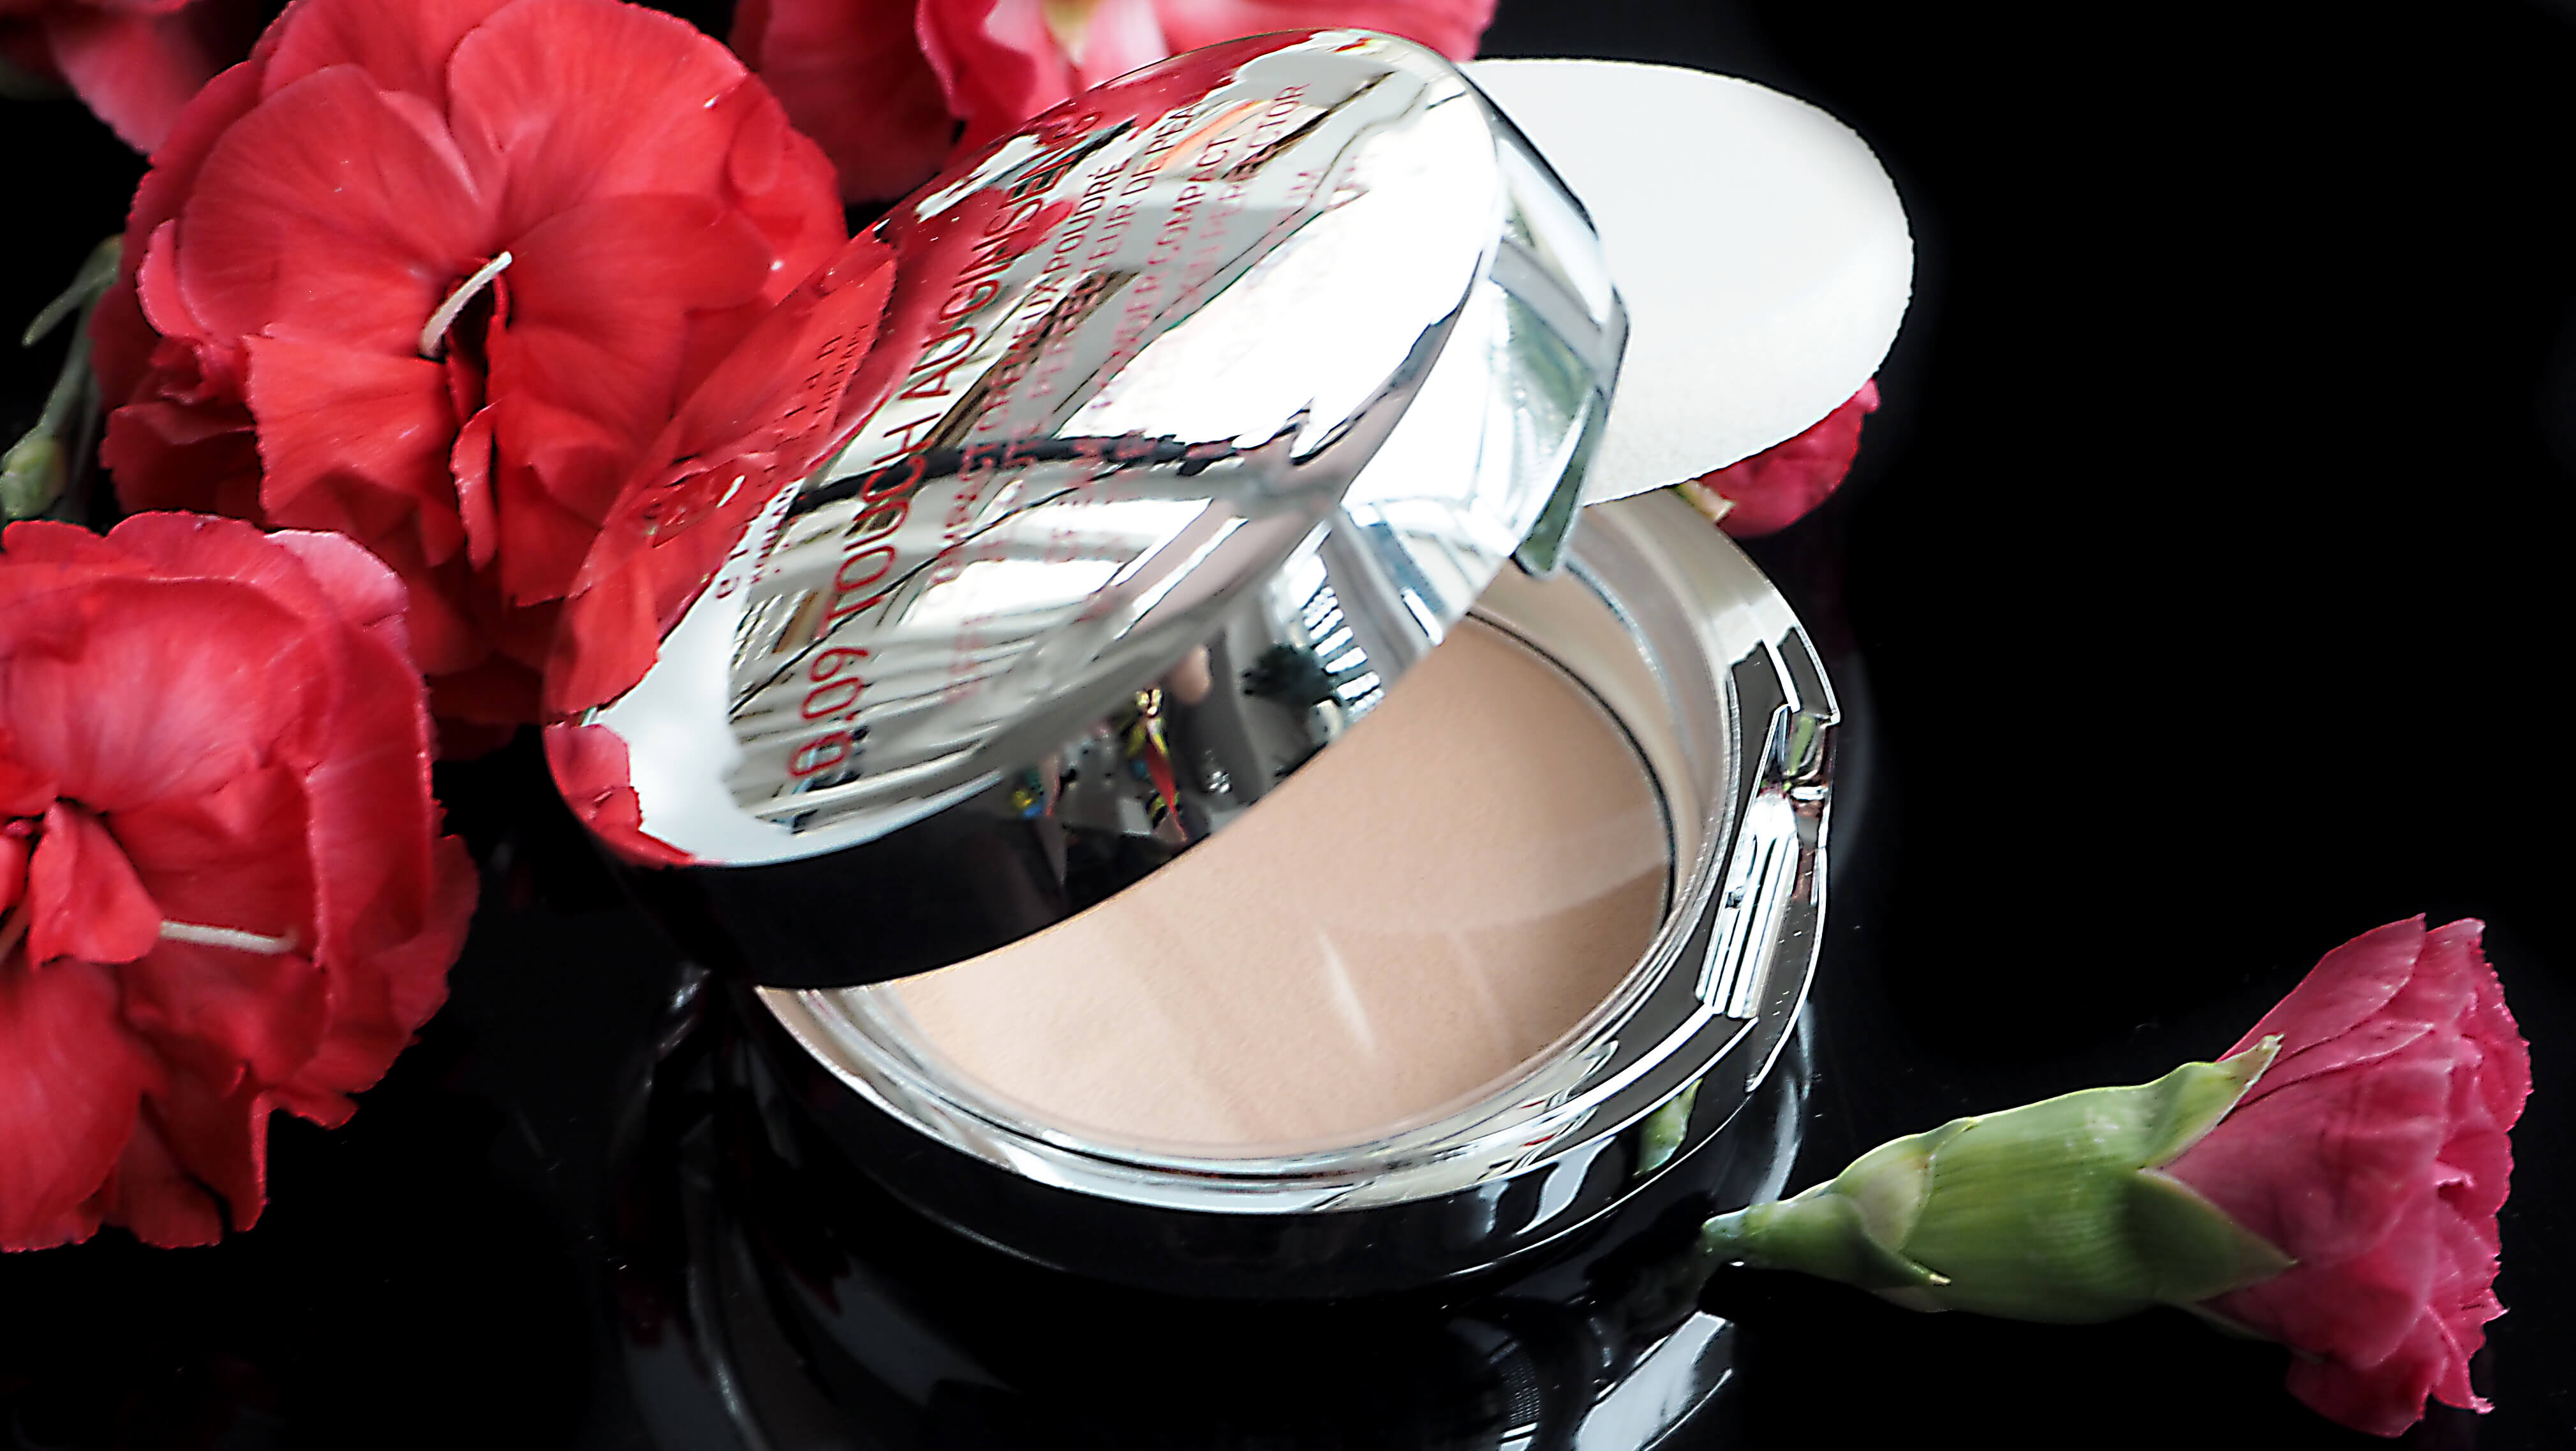 Puder ERBORIAN 0.09 TOUCH GINSENG